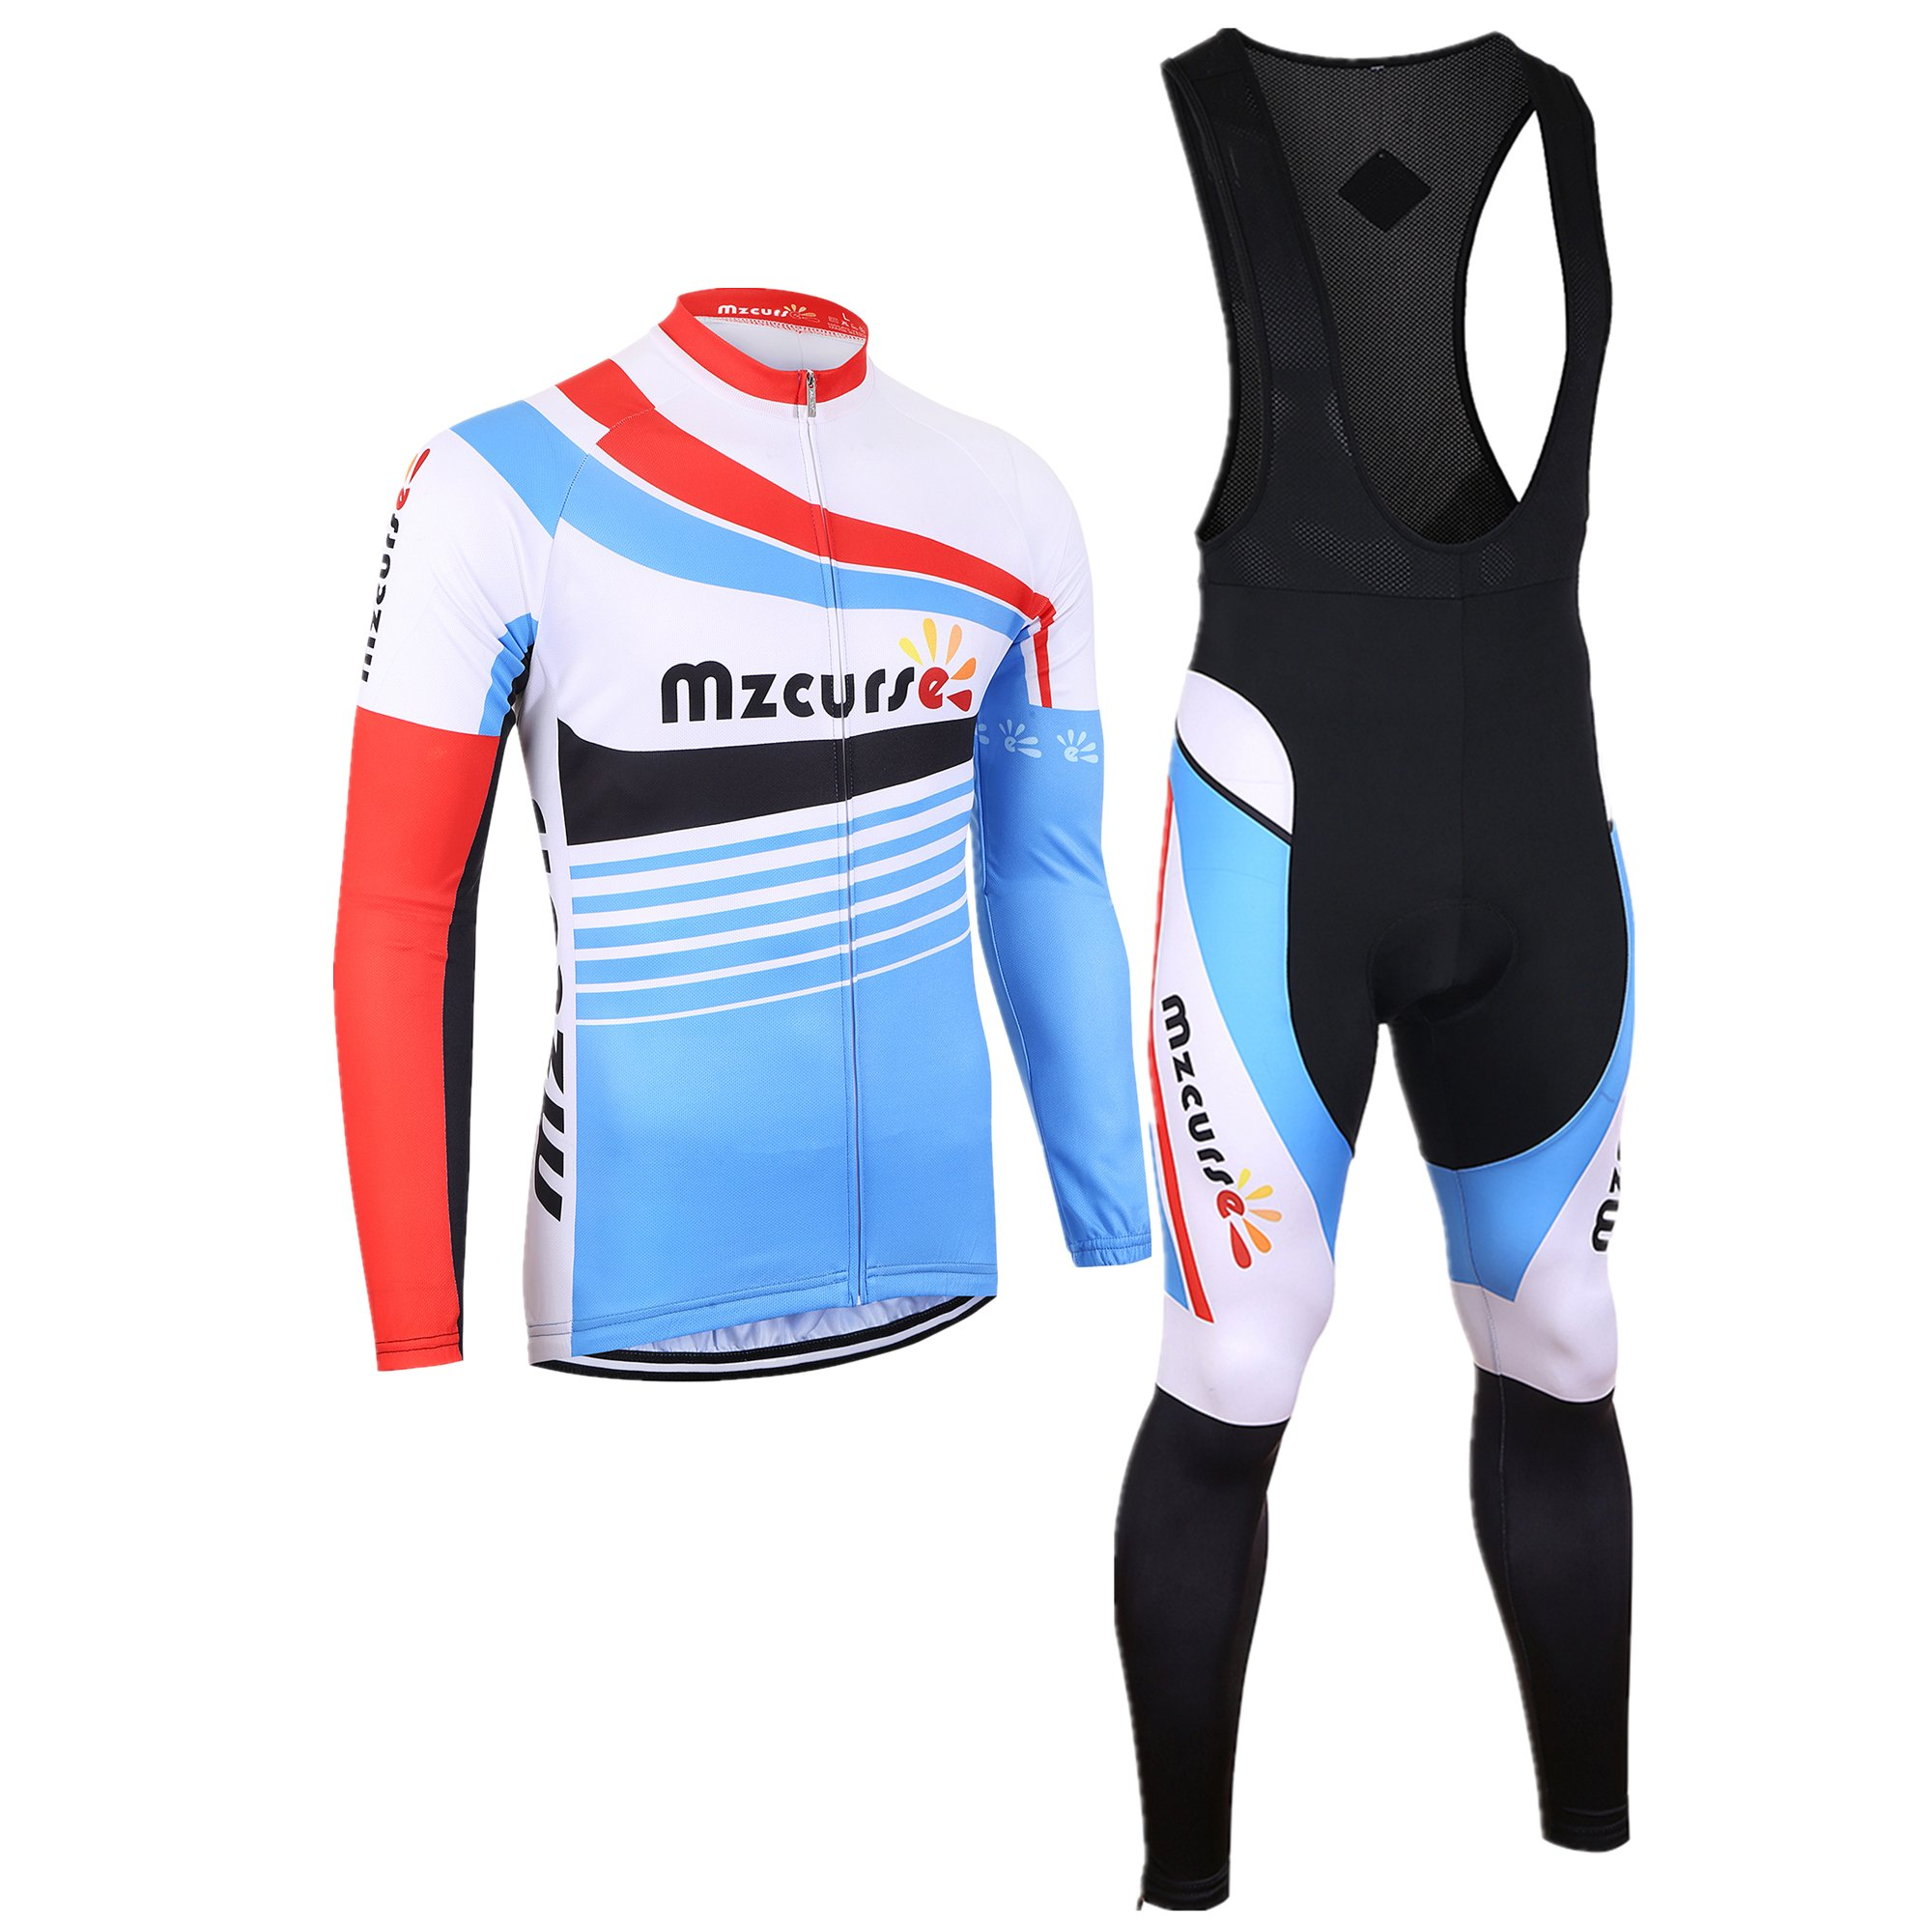 mzcurse Bicycle Bike Cycling Long Sleeve Jersey Jacket + Pants Shorts Set Skin Suits (Color Bib, Small,please check the size chart)